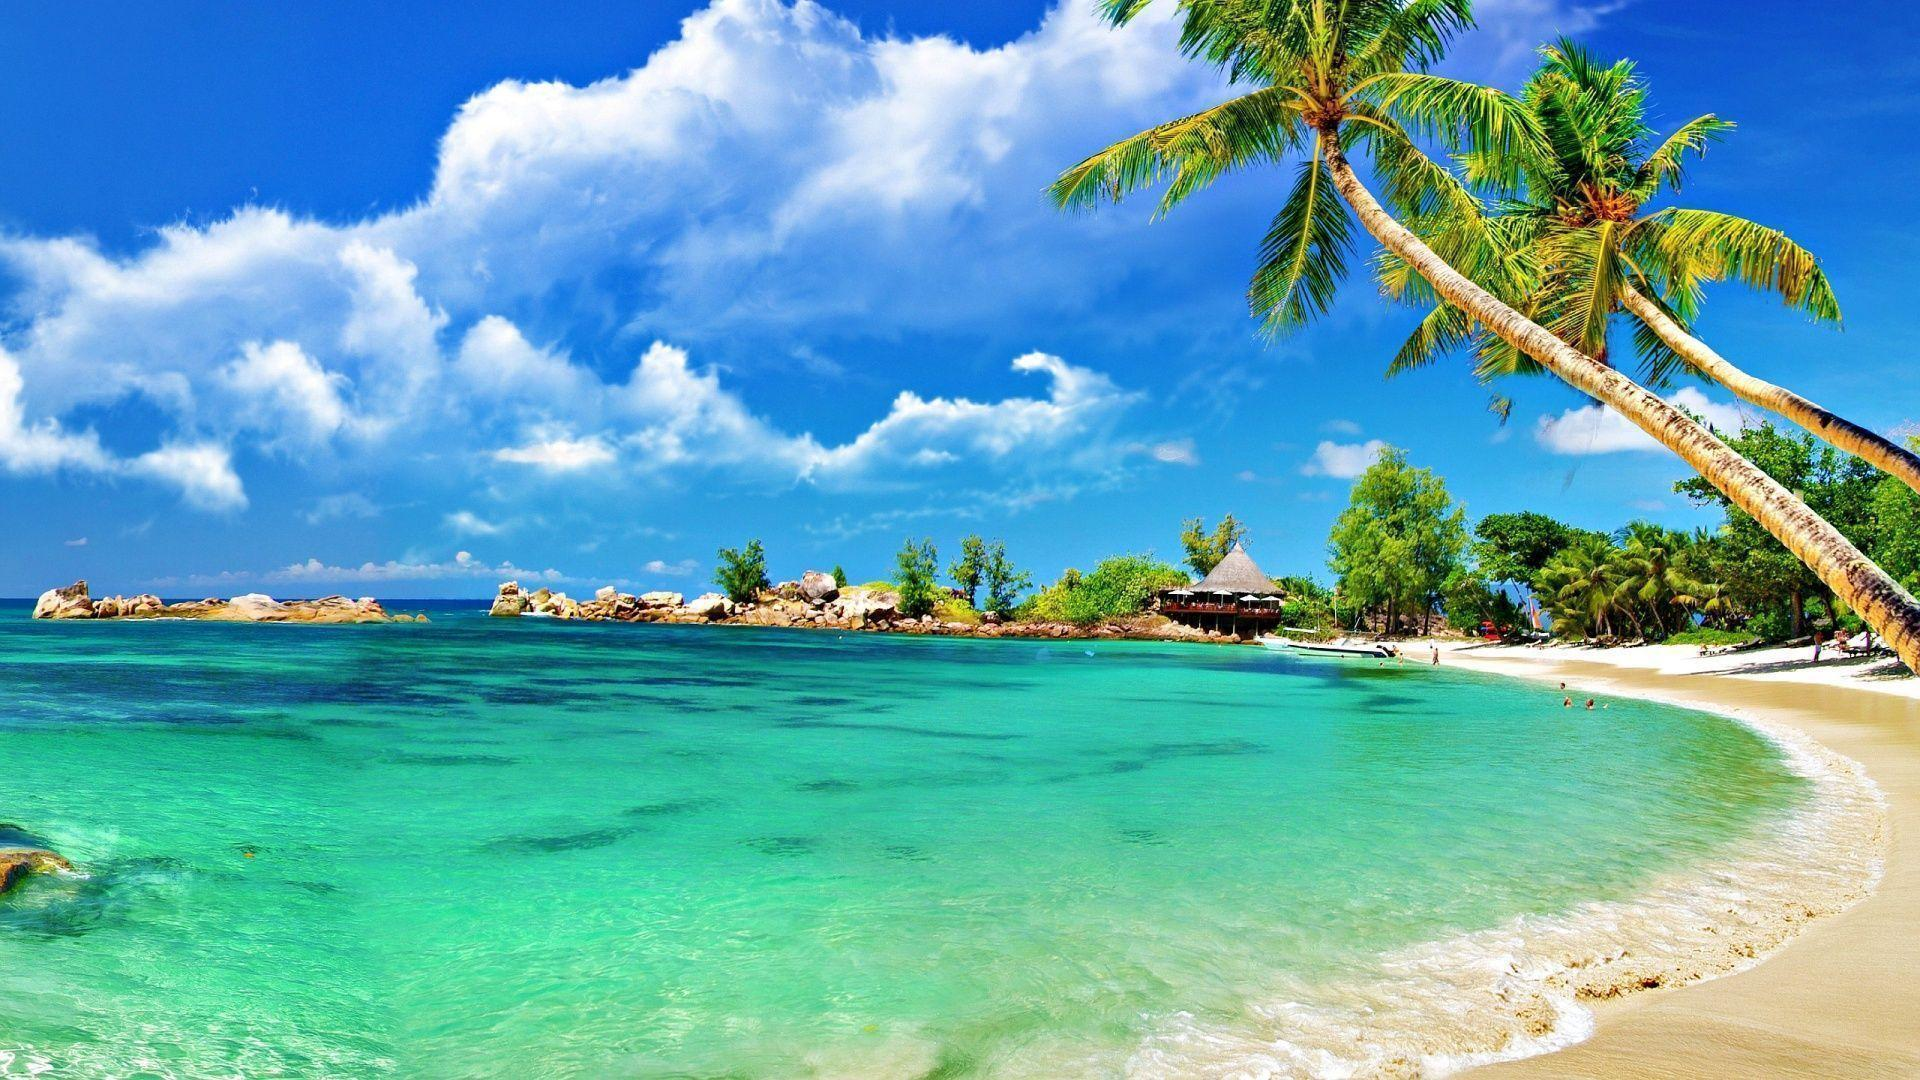 Tropical Beach Paradise Backgrounds: Beach Wallpapers 1920x1080